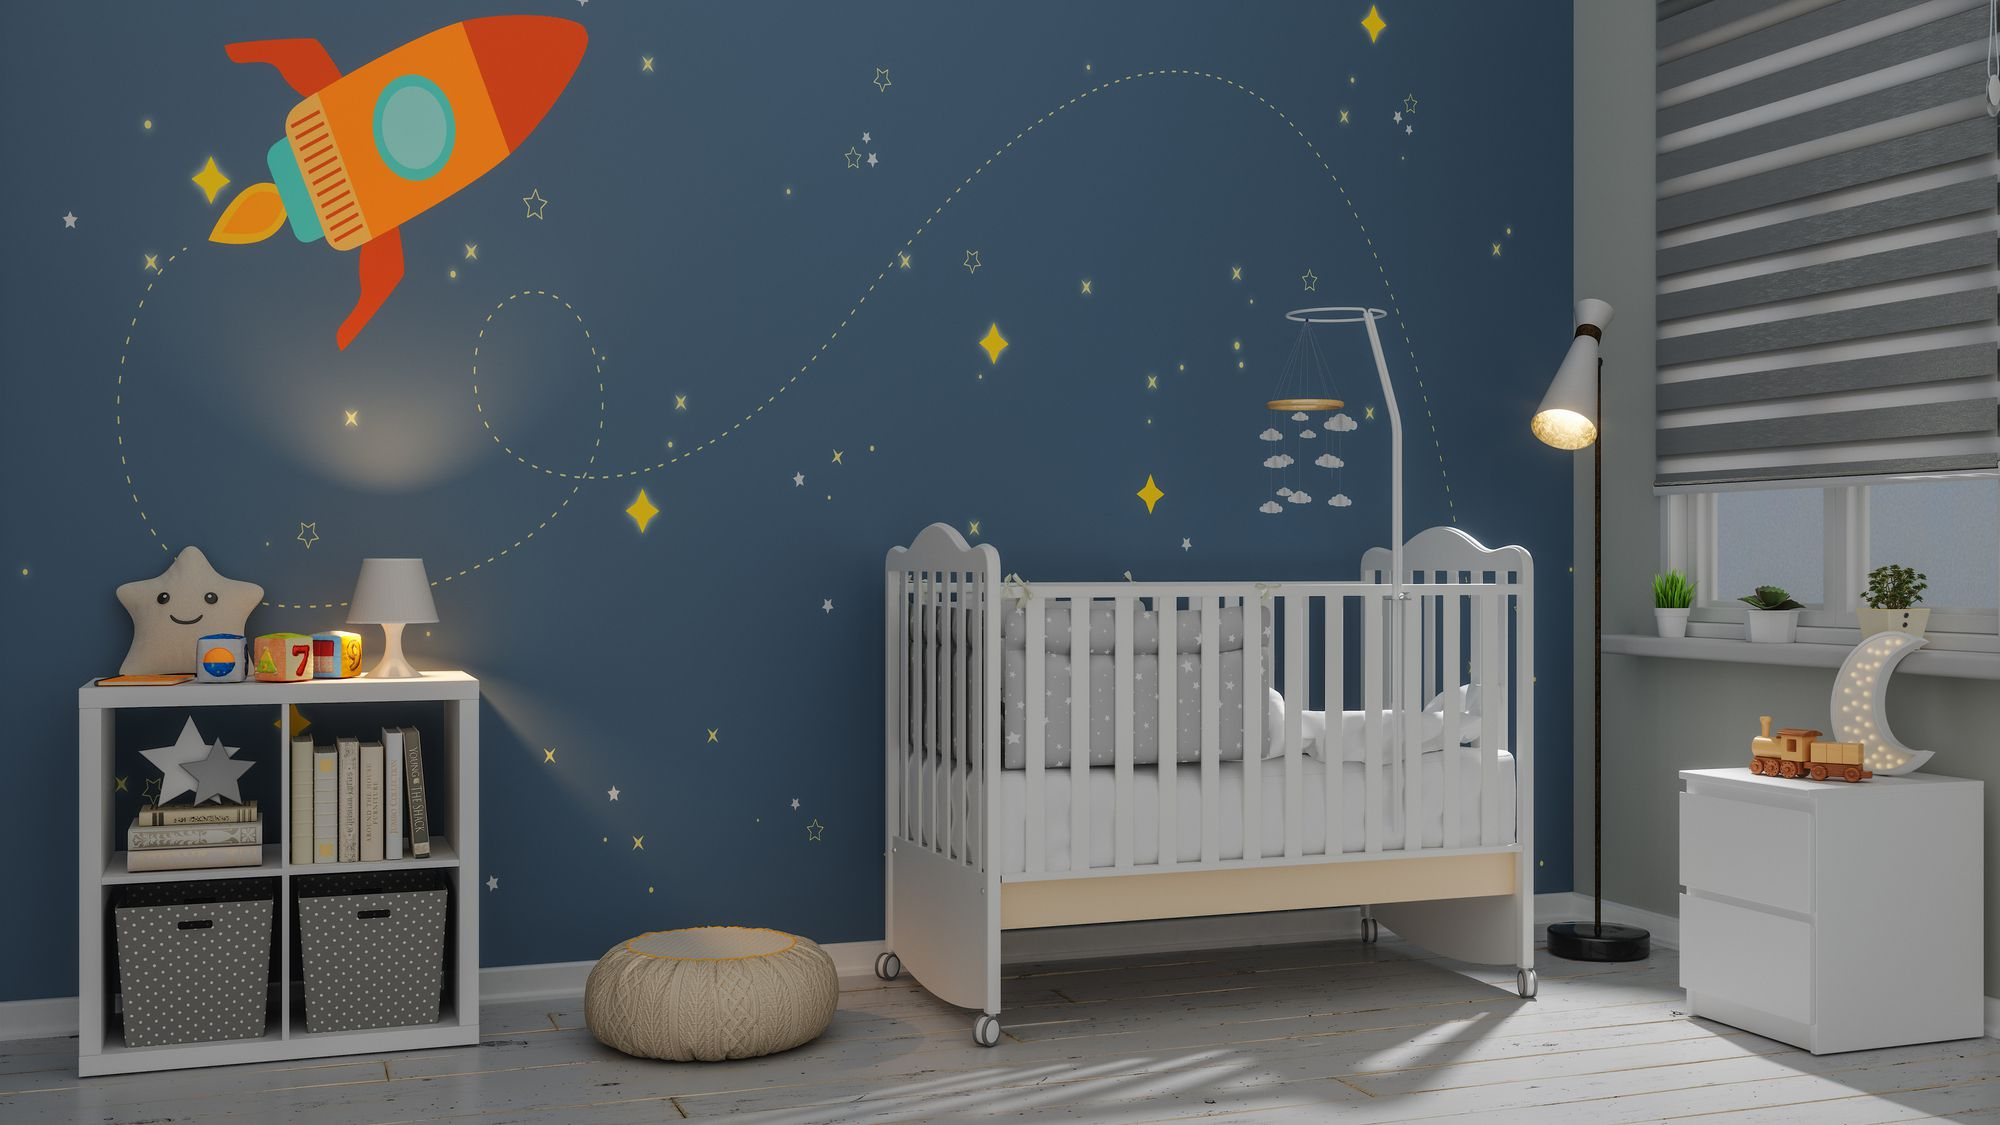 12 Space-Themed Rooms for Kids